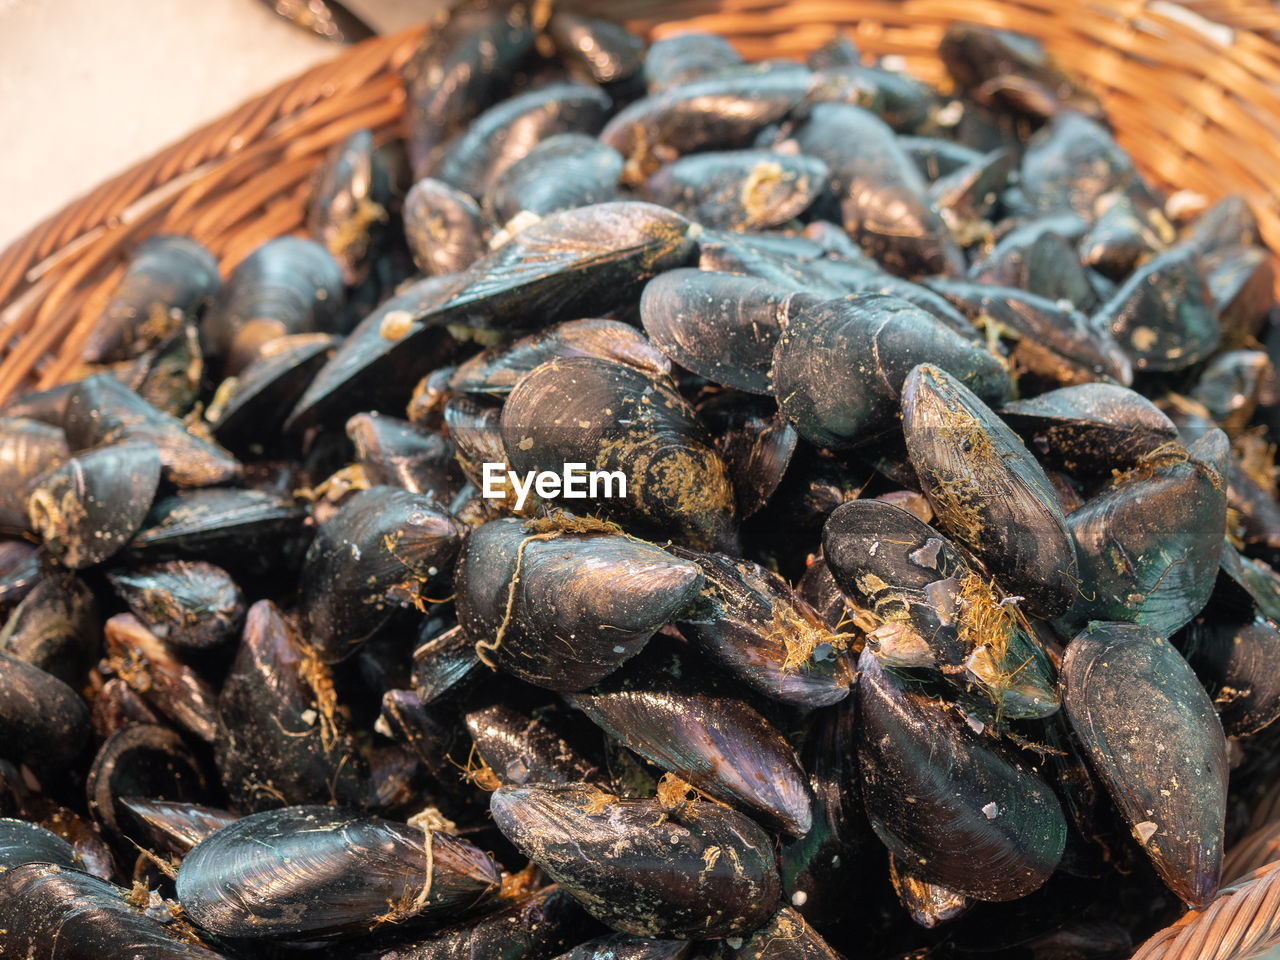 food, food and drink, seafood, freshness, wellbeing, large group of objects, still life, close-up, no people, healthy eating, high angle view, focus on foreground, animal, abundance, indoors, mussel, container, clam, animal wildlife, day